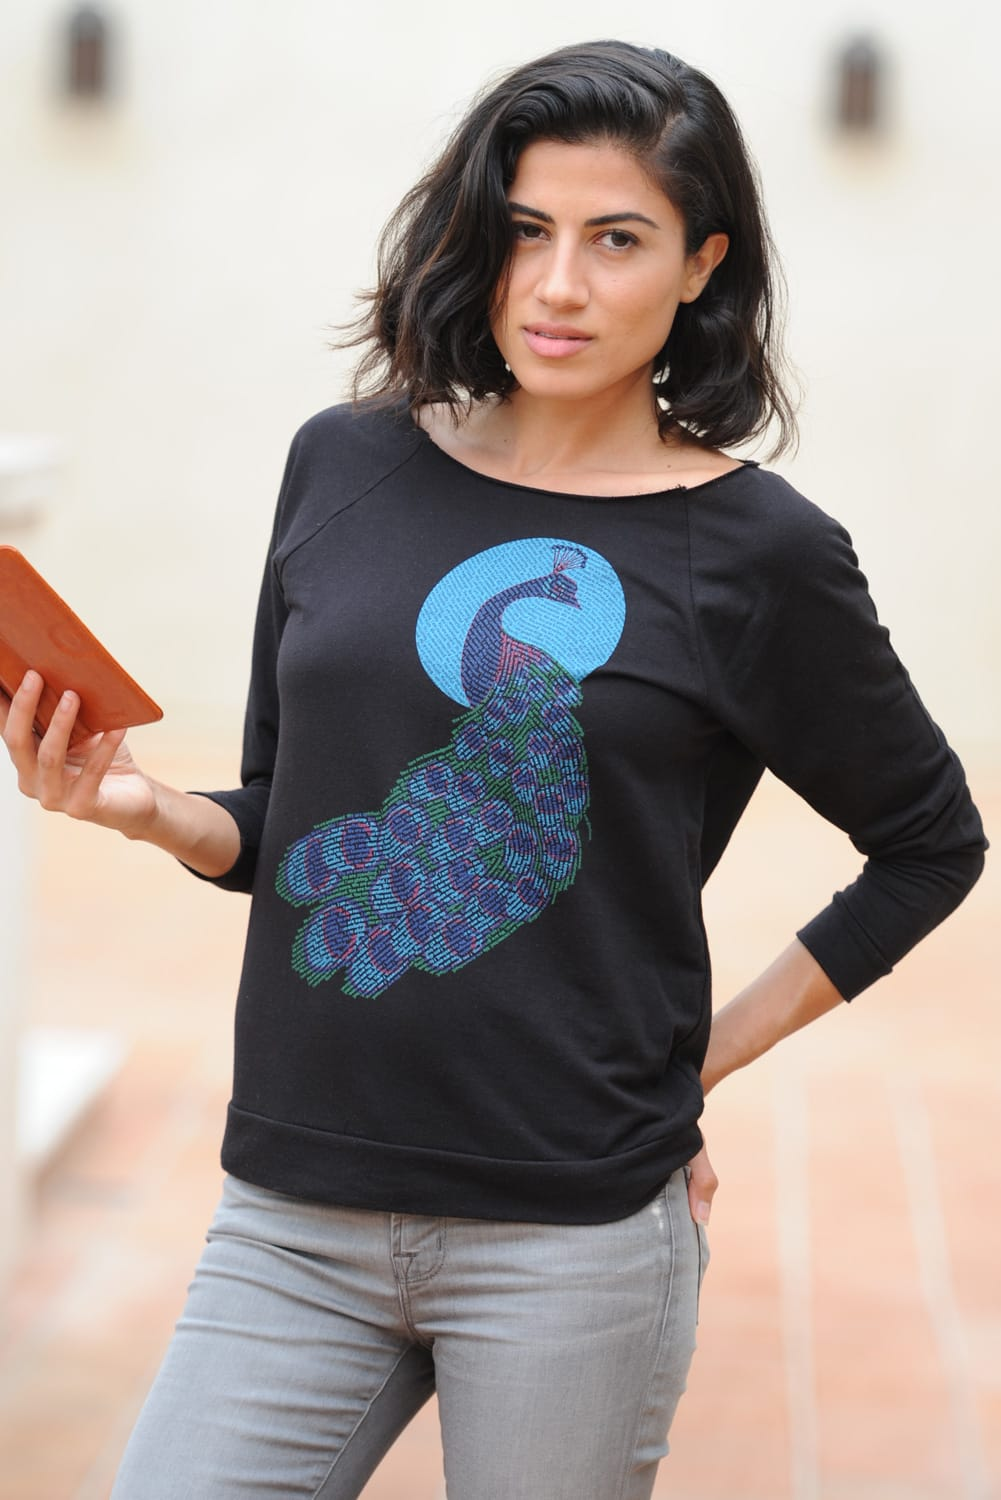 Peacock design on terry 3/4 sleeve raglan wide neck tee